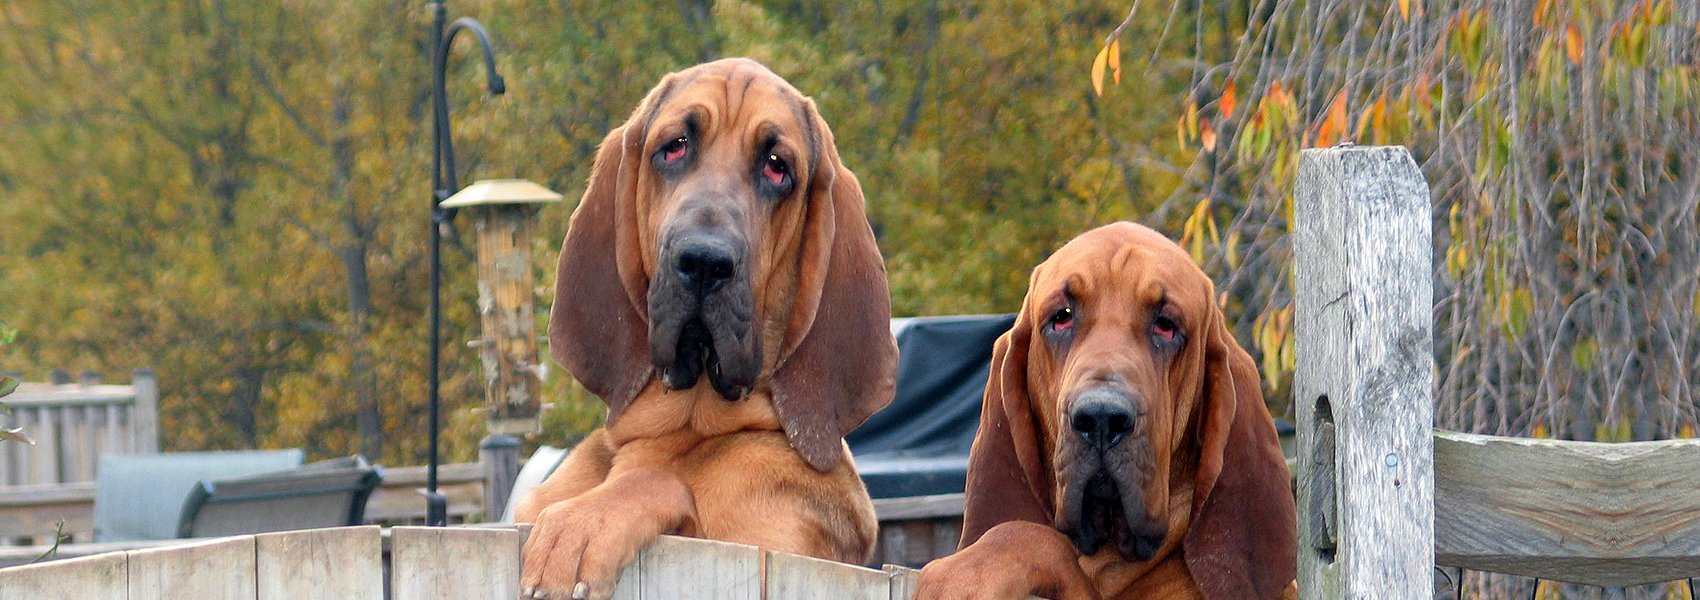 American Bloodhound Club membership slide showing two Bloodhounds with paws on the fence